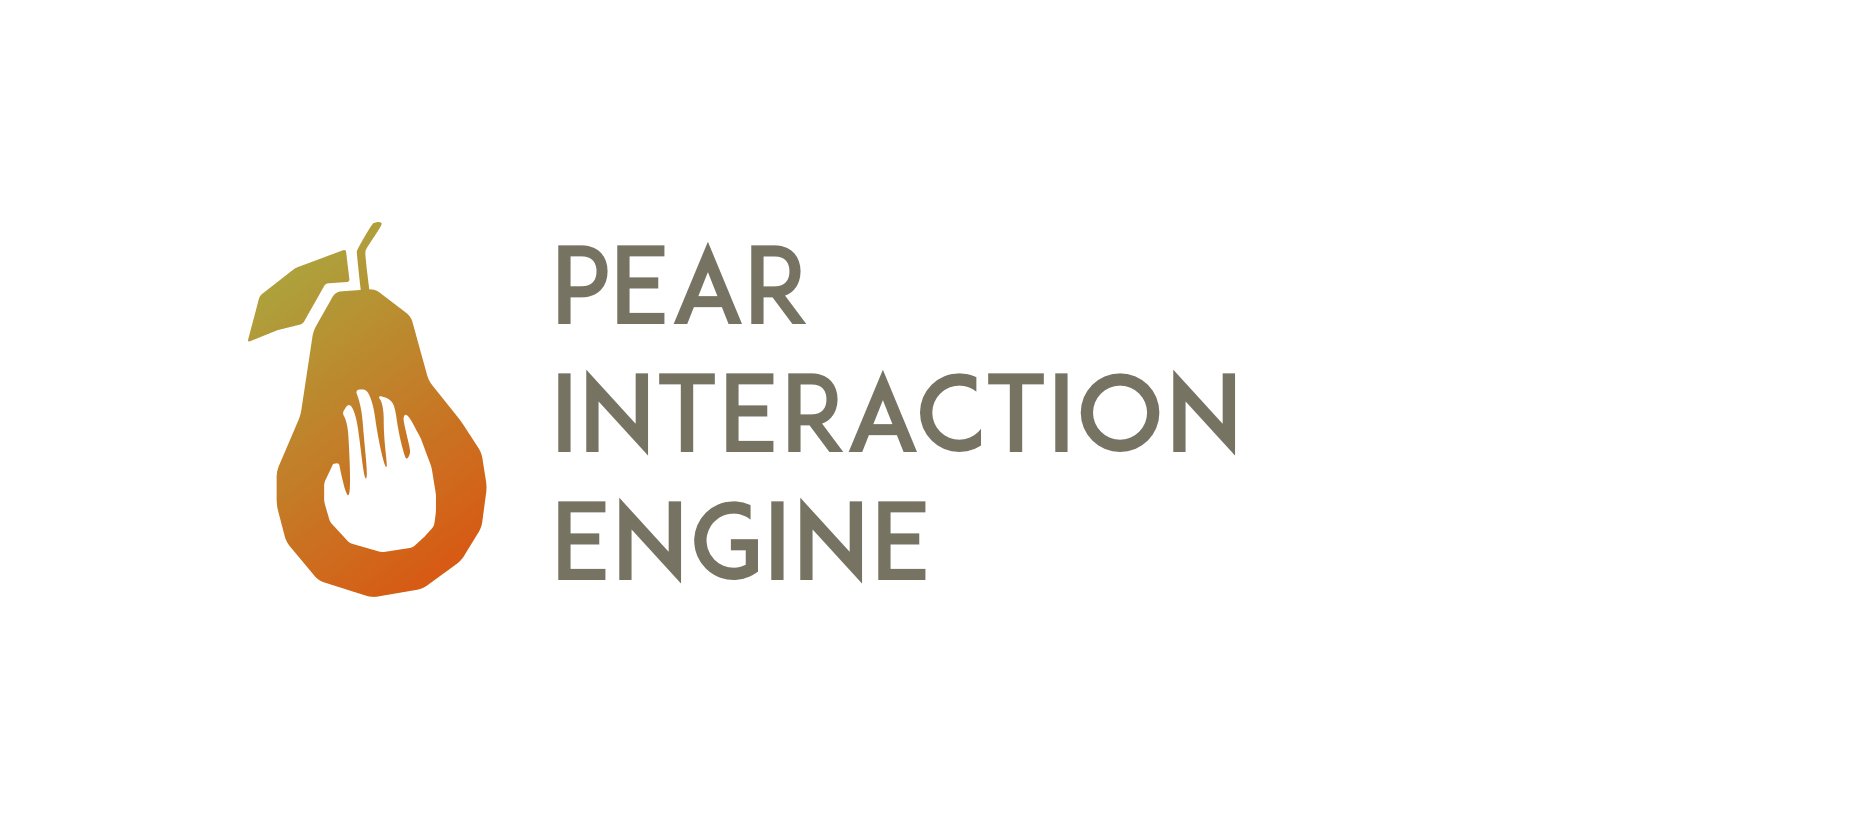 pear interaction engine